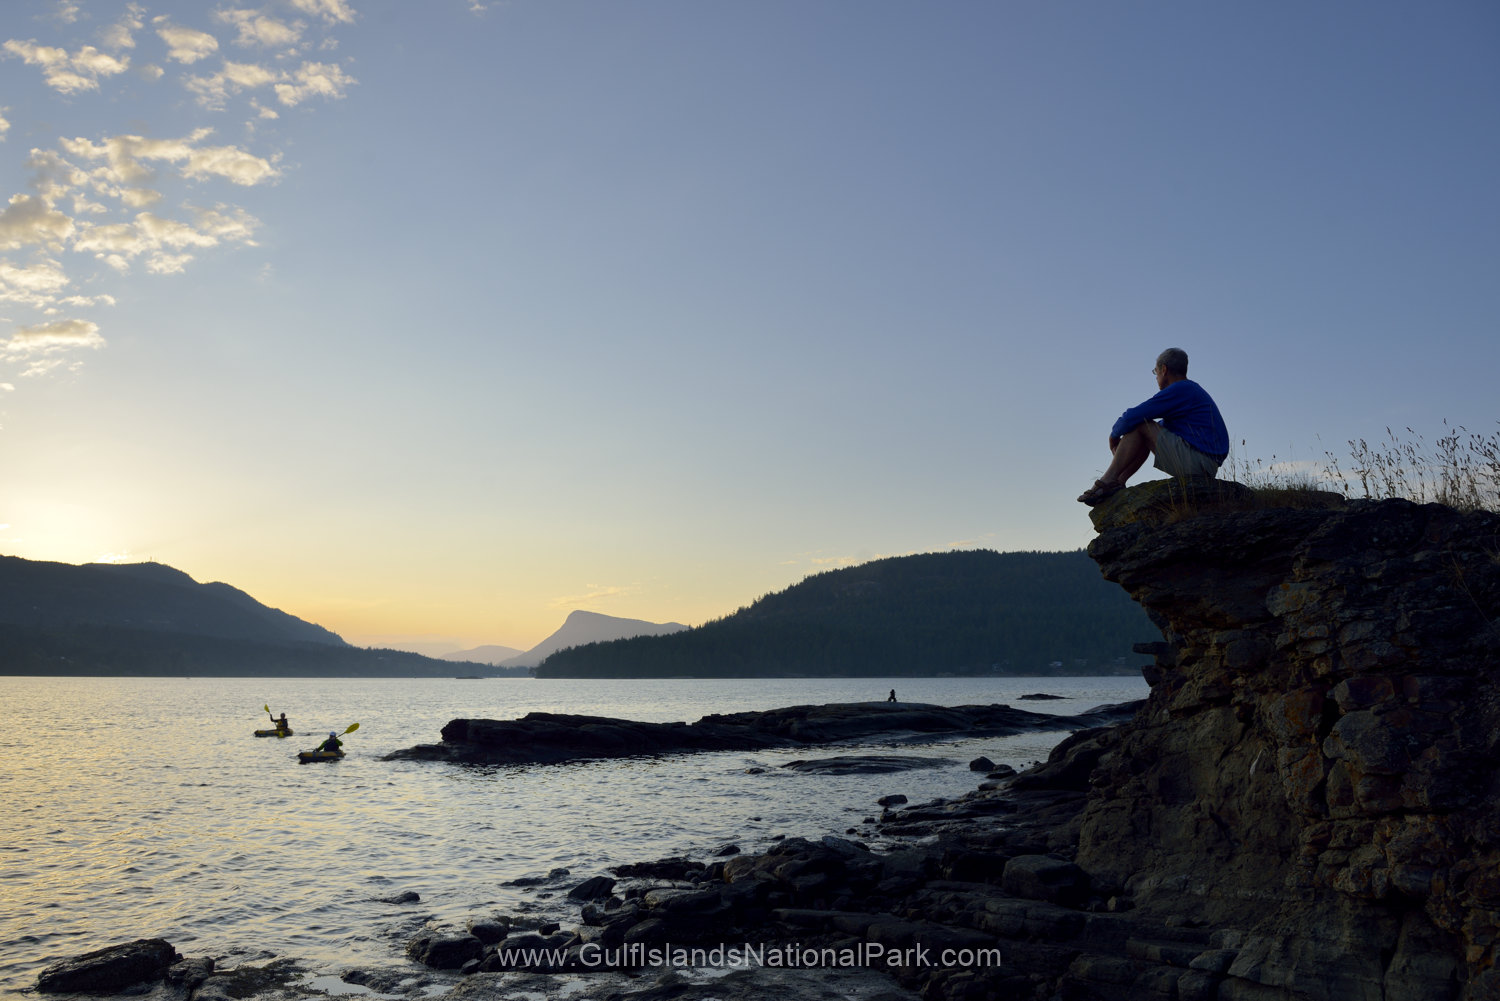 Man watching kayakers at sunset, Russell Island, British Columbia, Canada